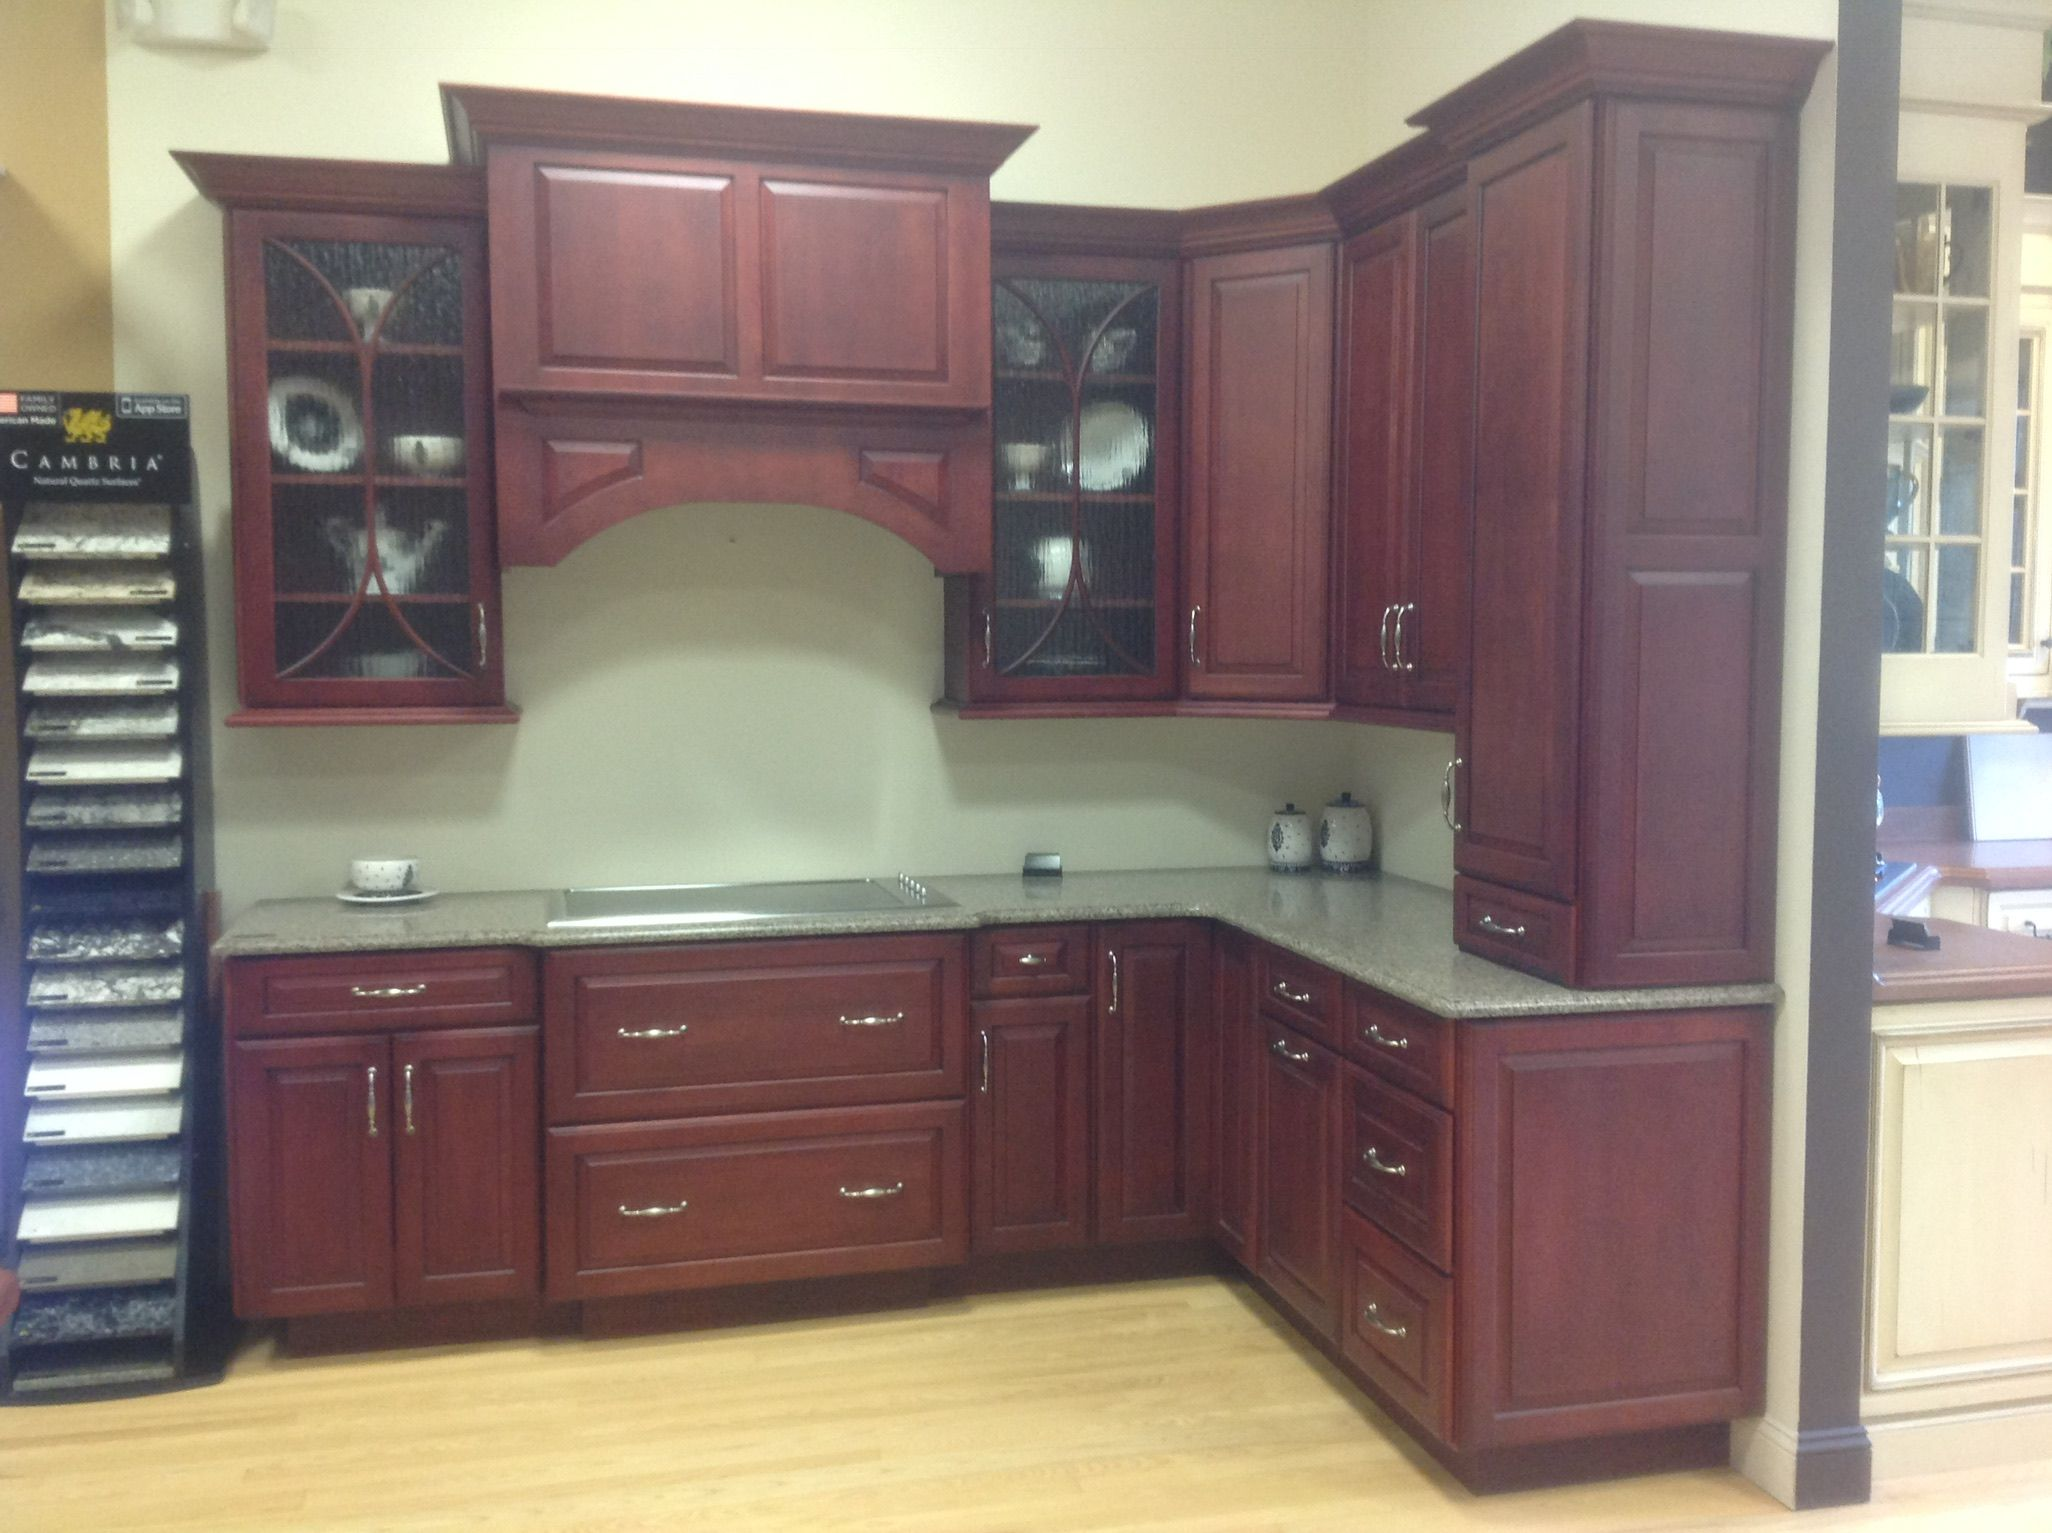 For Sale Medallion Cabinet Kitchen Display Brookhill Vineyard 2000 Come To Our Display Sal Glass Cabinets Display Full Overlay Cabinets Medallion Cabinets